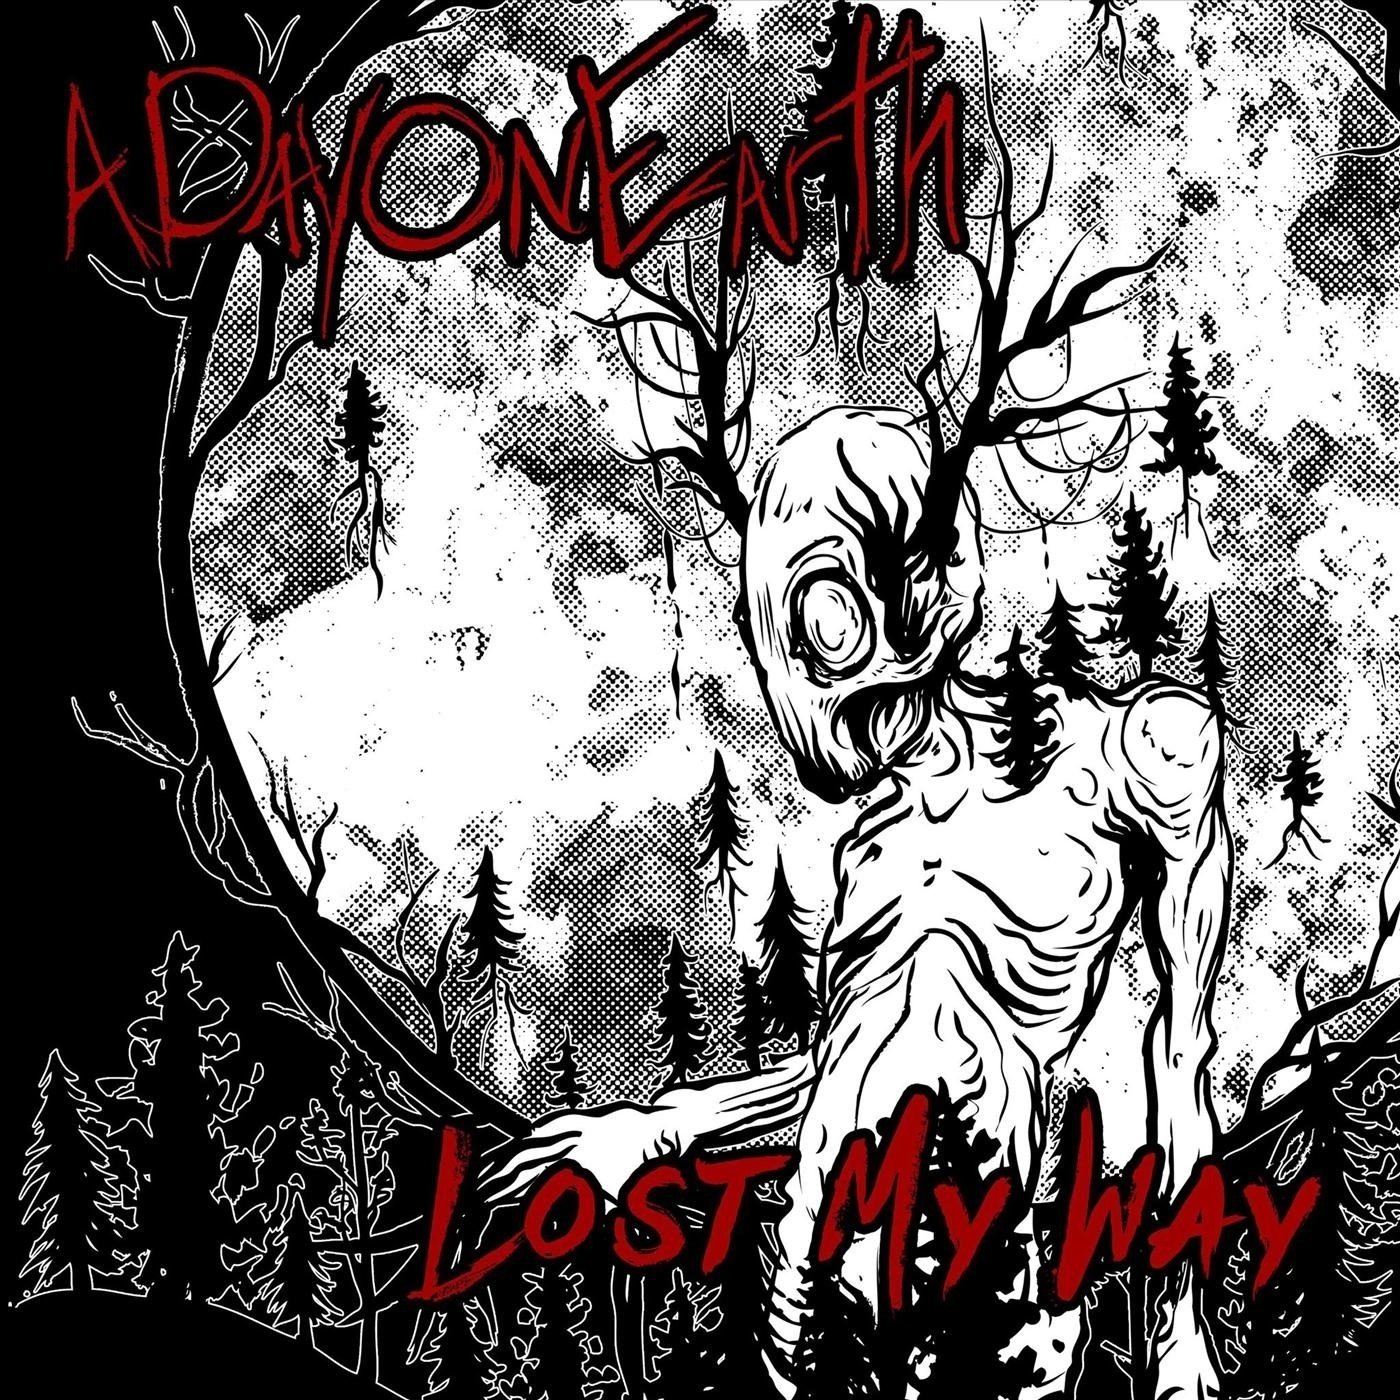 A Day on Earth - Lost My Way [single] (2020)